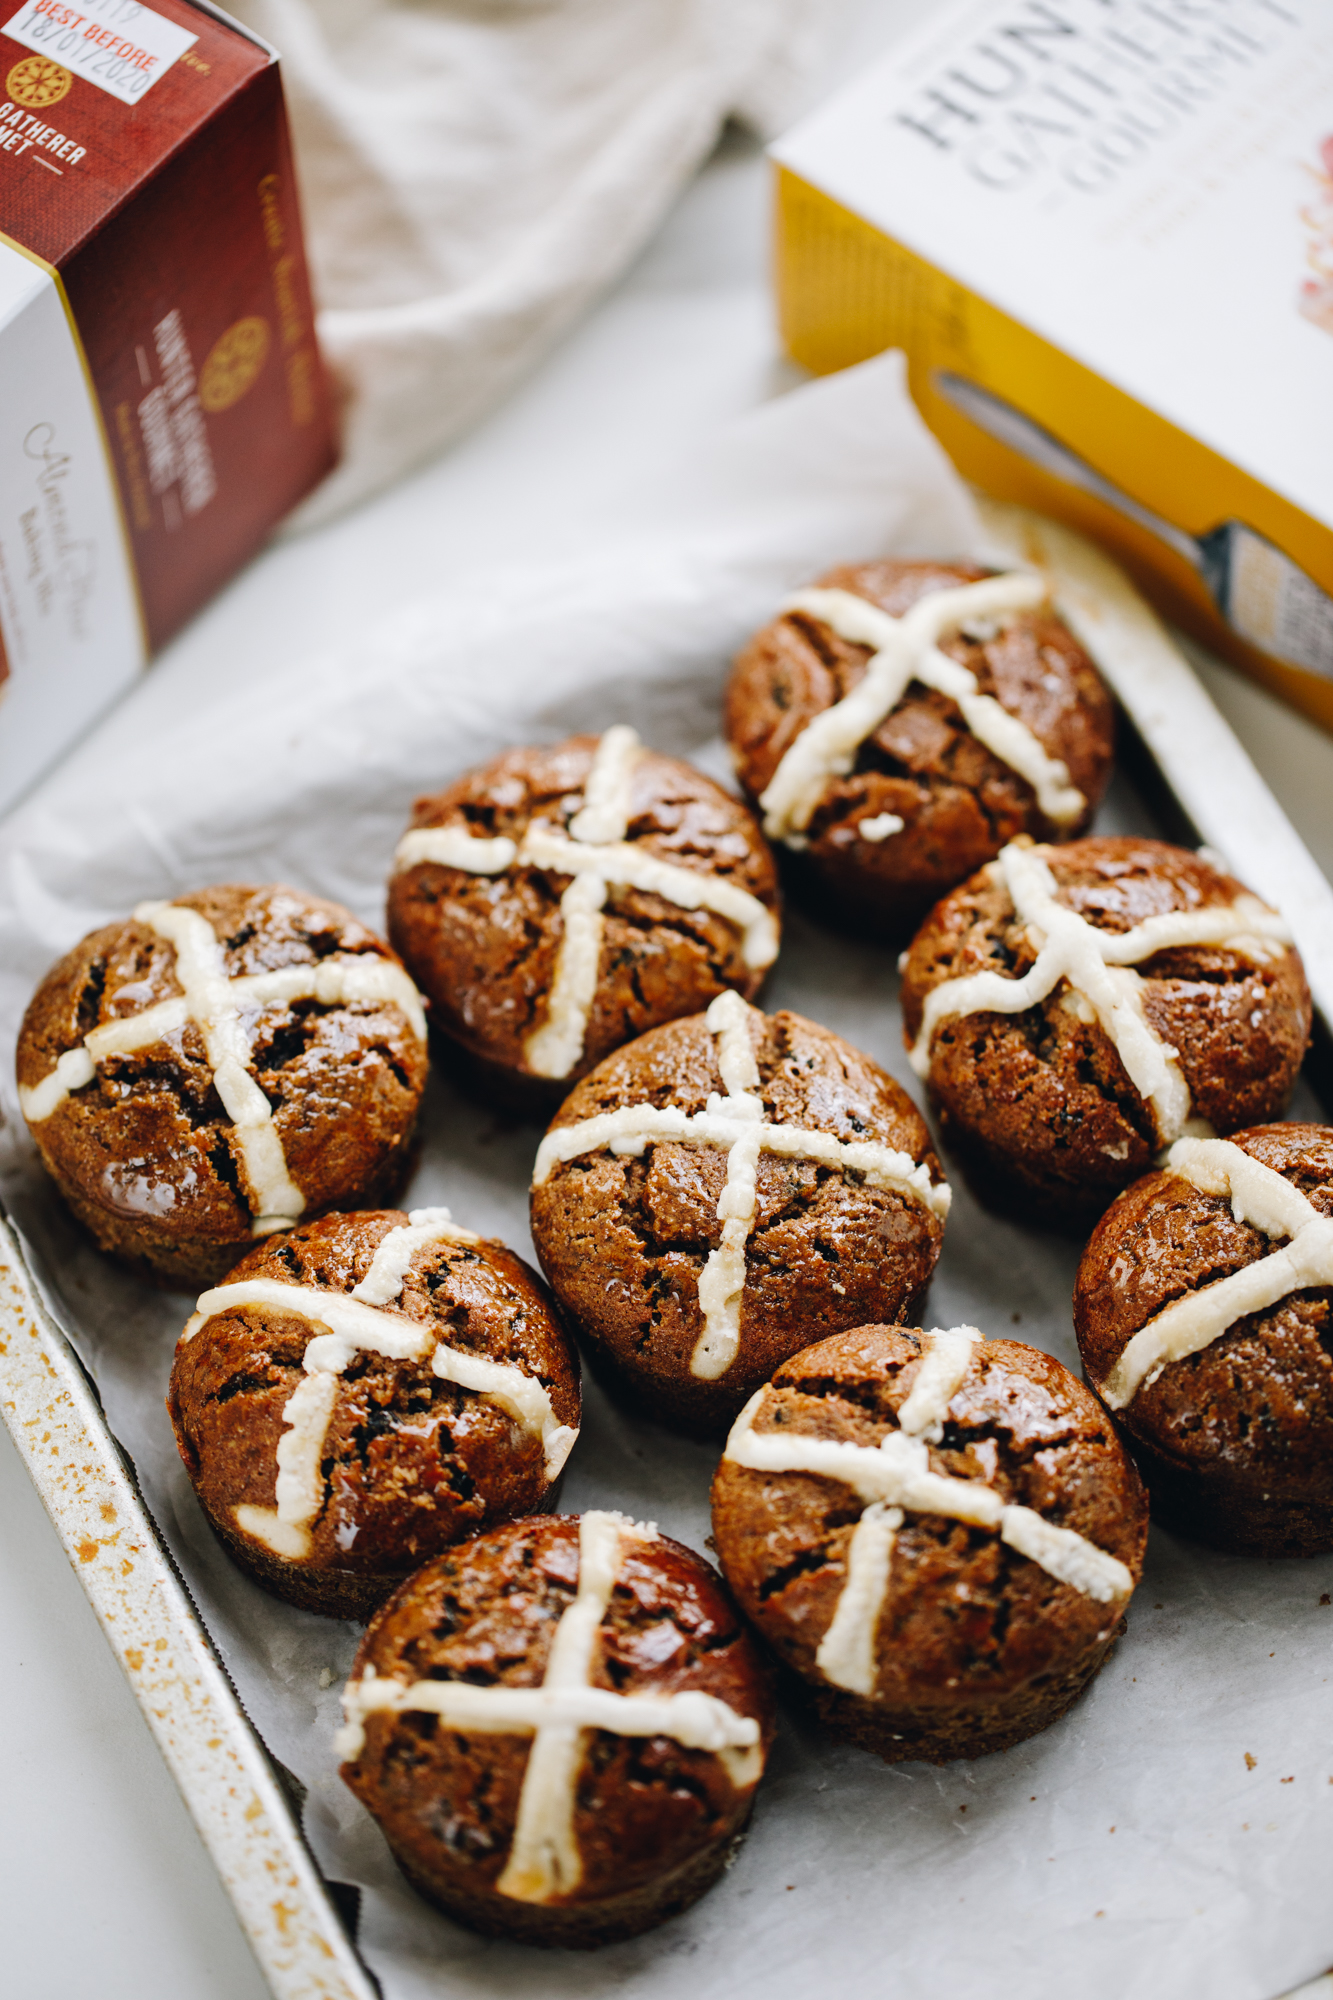 Hot Cross Bun Muffins